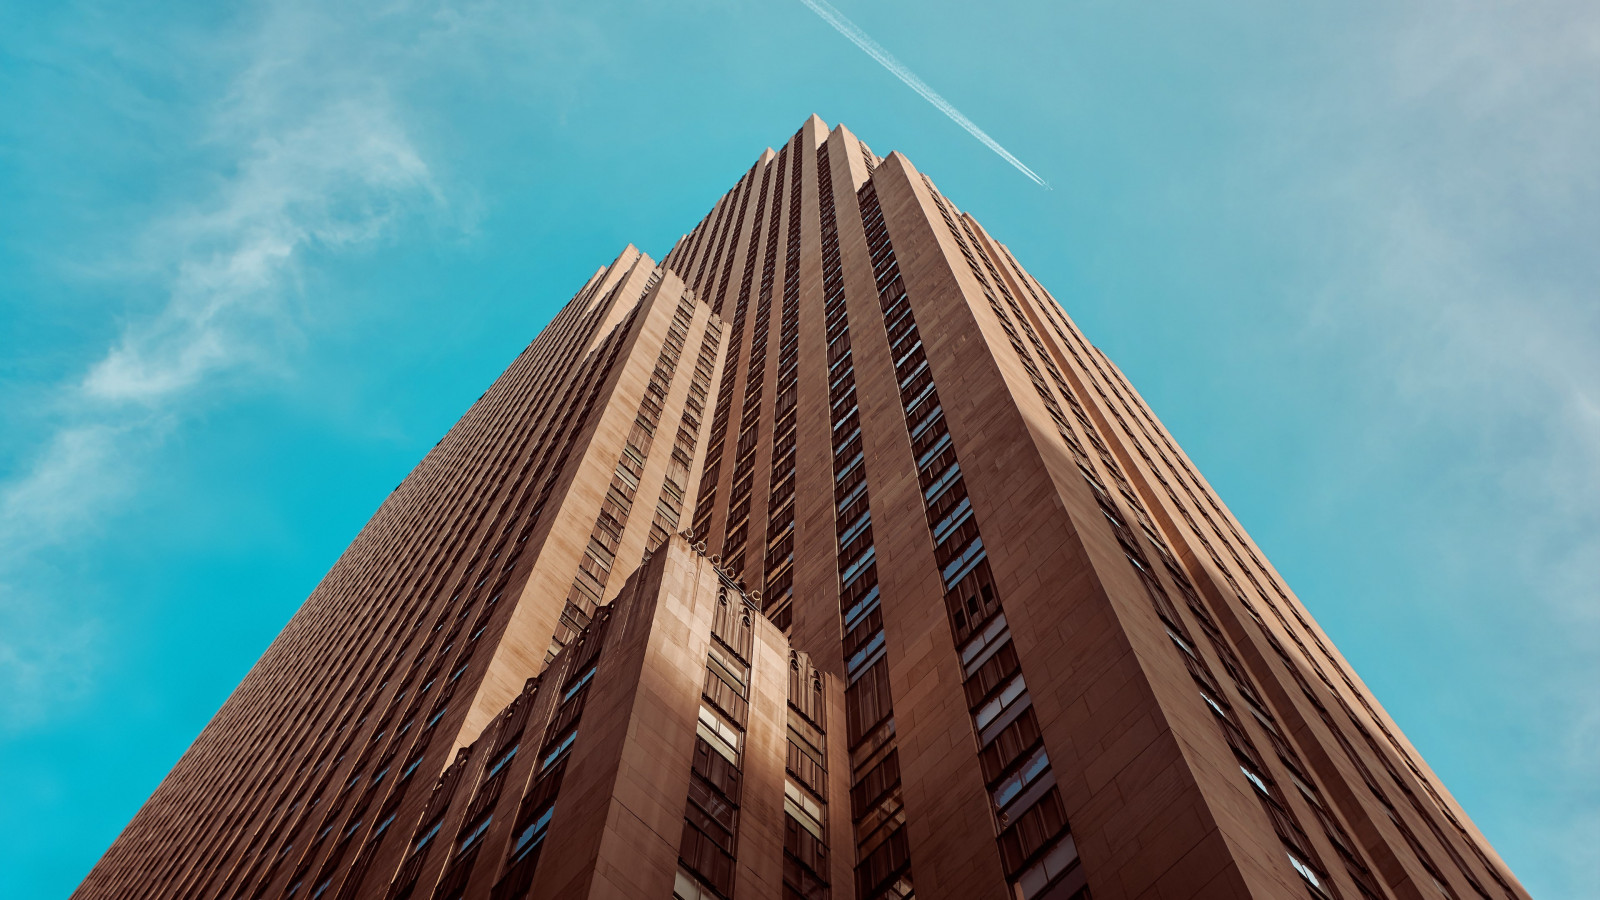 Rockefeller building touching the sky wallpaper 1600x900